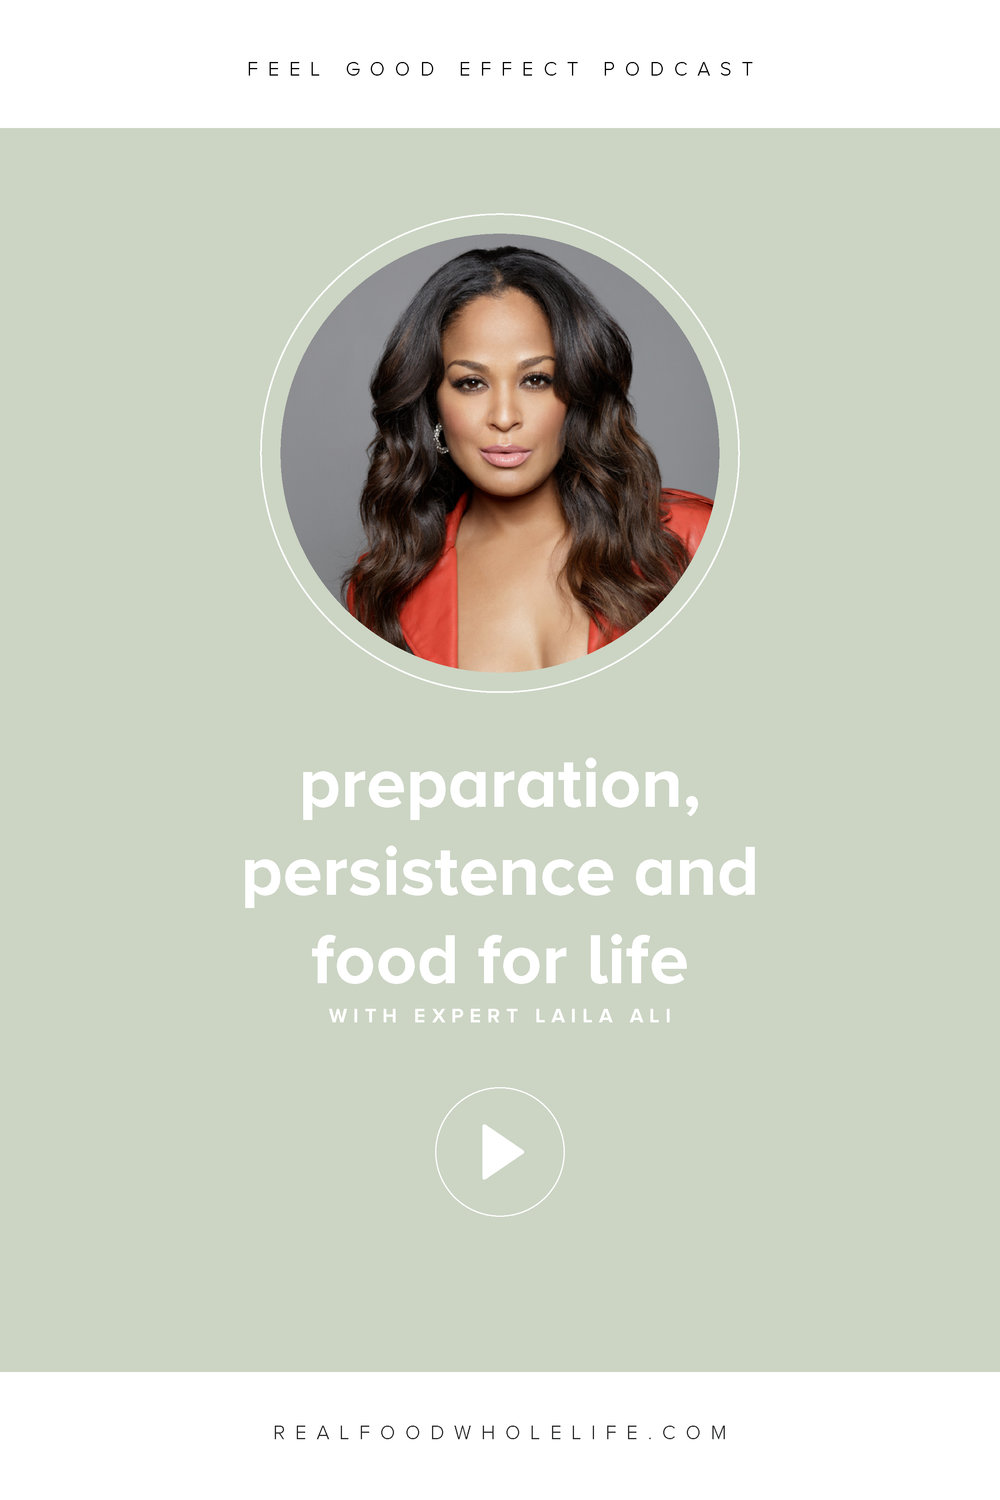 Laila Ali on Preparation, Persistence and Food For Life on the Feel Good Effect Podcast